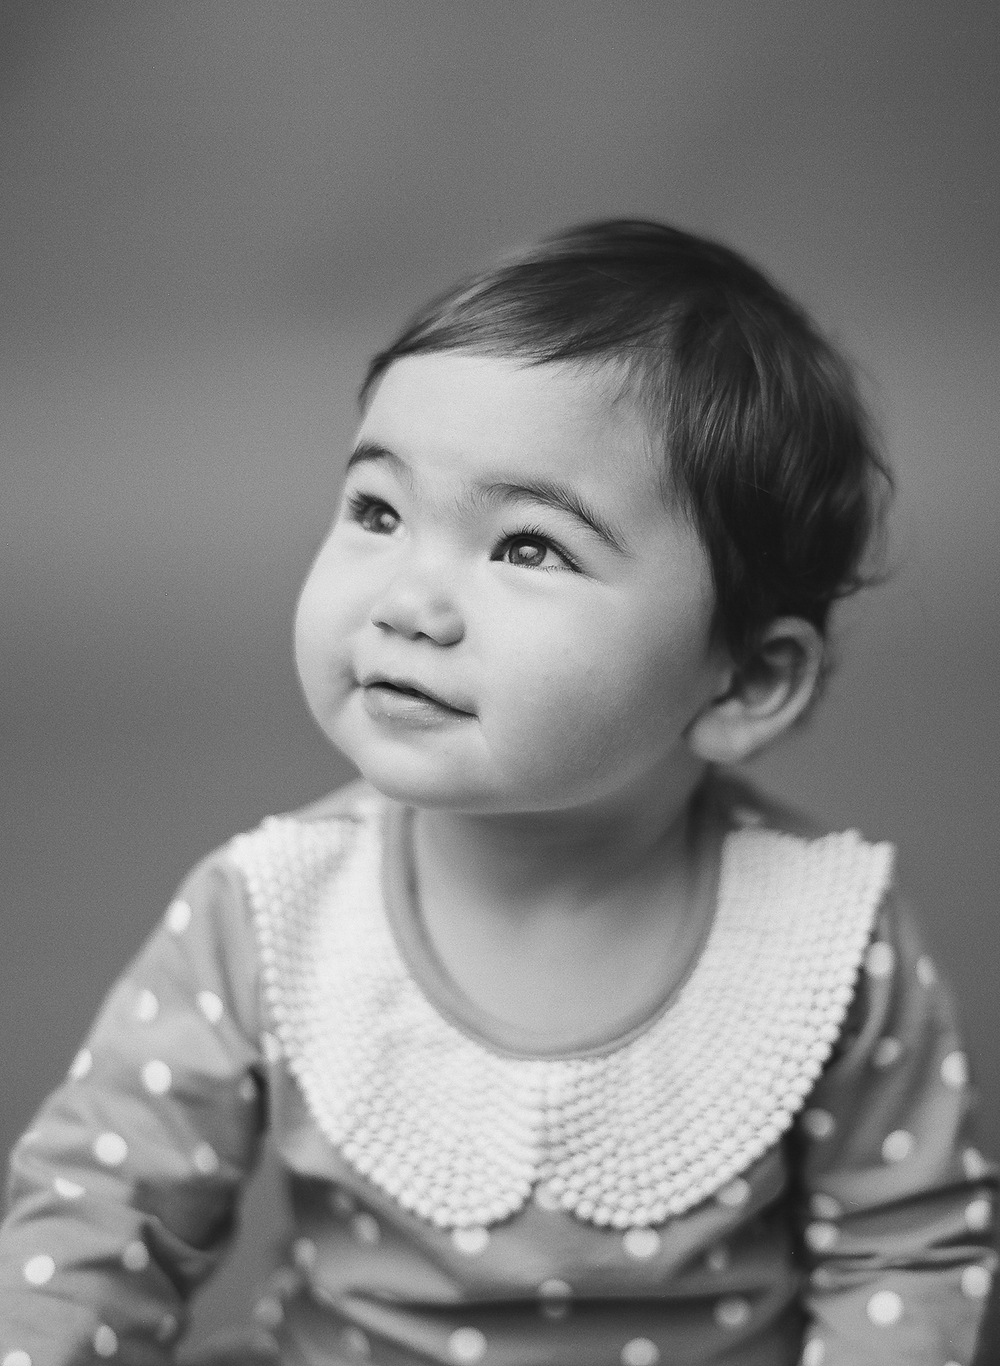 Newborn photography Seattle, by Sandra Coan. Studio photograph. Black and white photo of toddle girl look up at her mom.